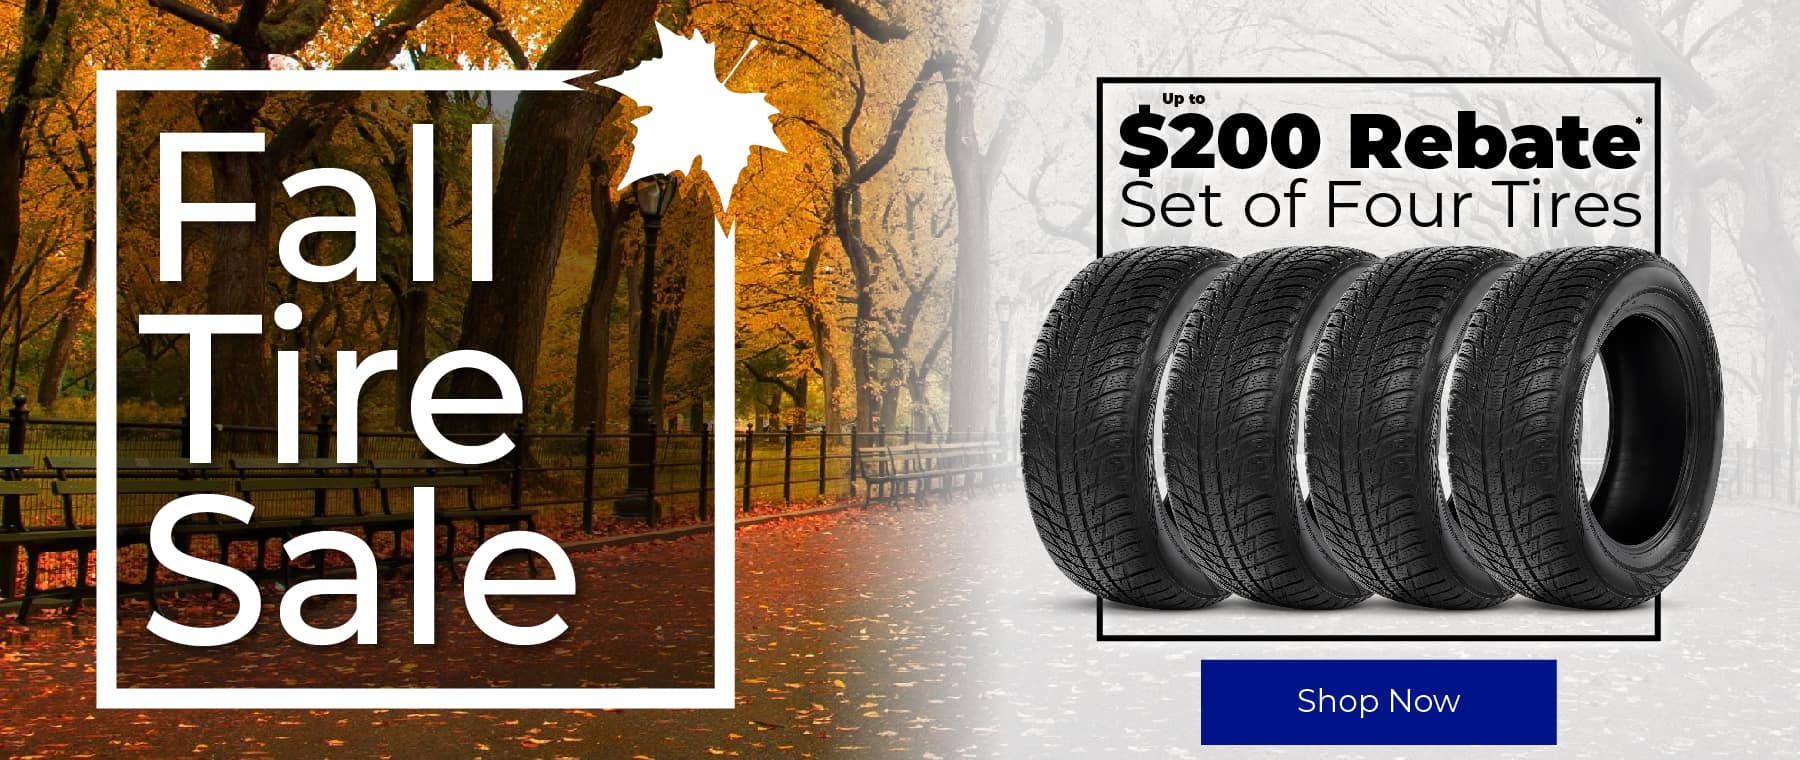 Get up to a $200 rebate on four tires during our fall tire sale!